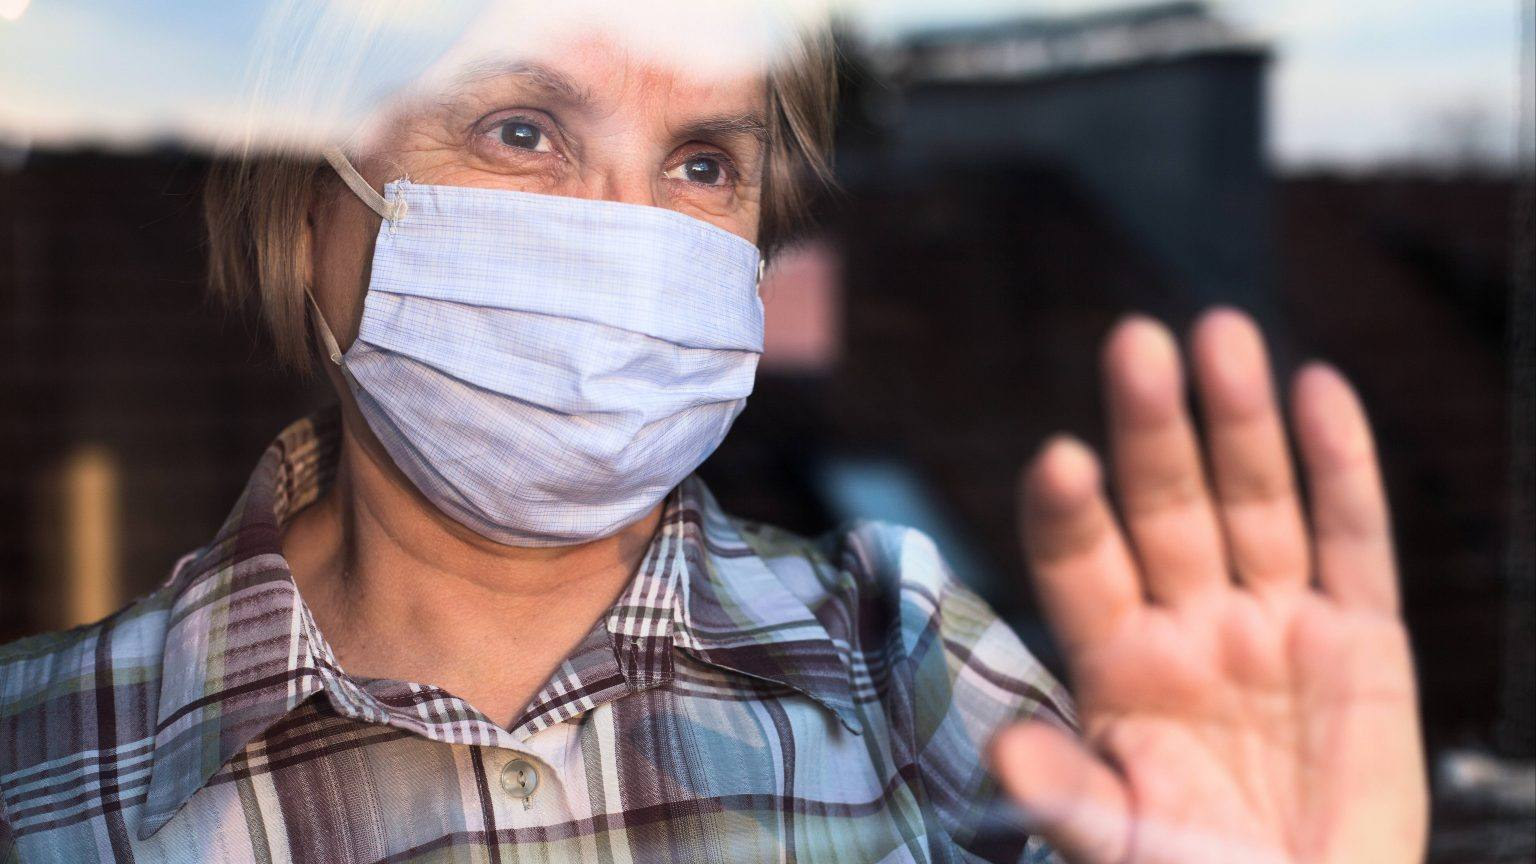 an-elderly-white-woman-wearing-a-face-mask-and-holding-her-hand-up-on-a-window-looking-outside-and-seeming-sad-isolated-16x9-1-1536x864